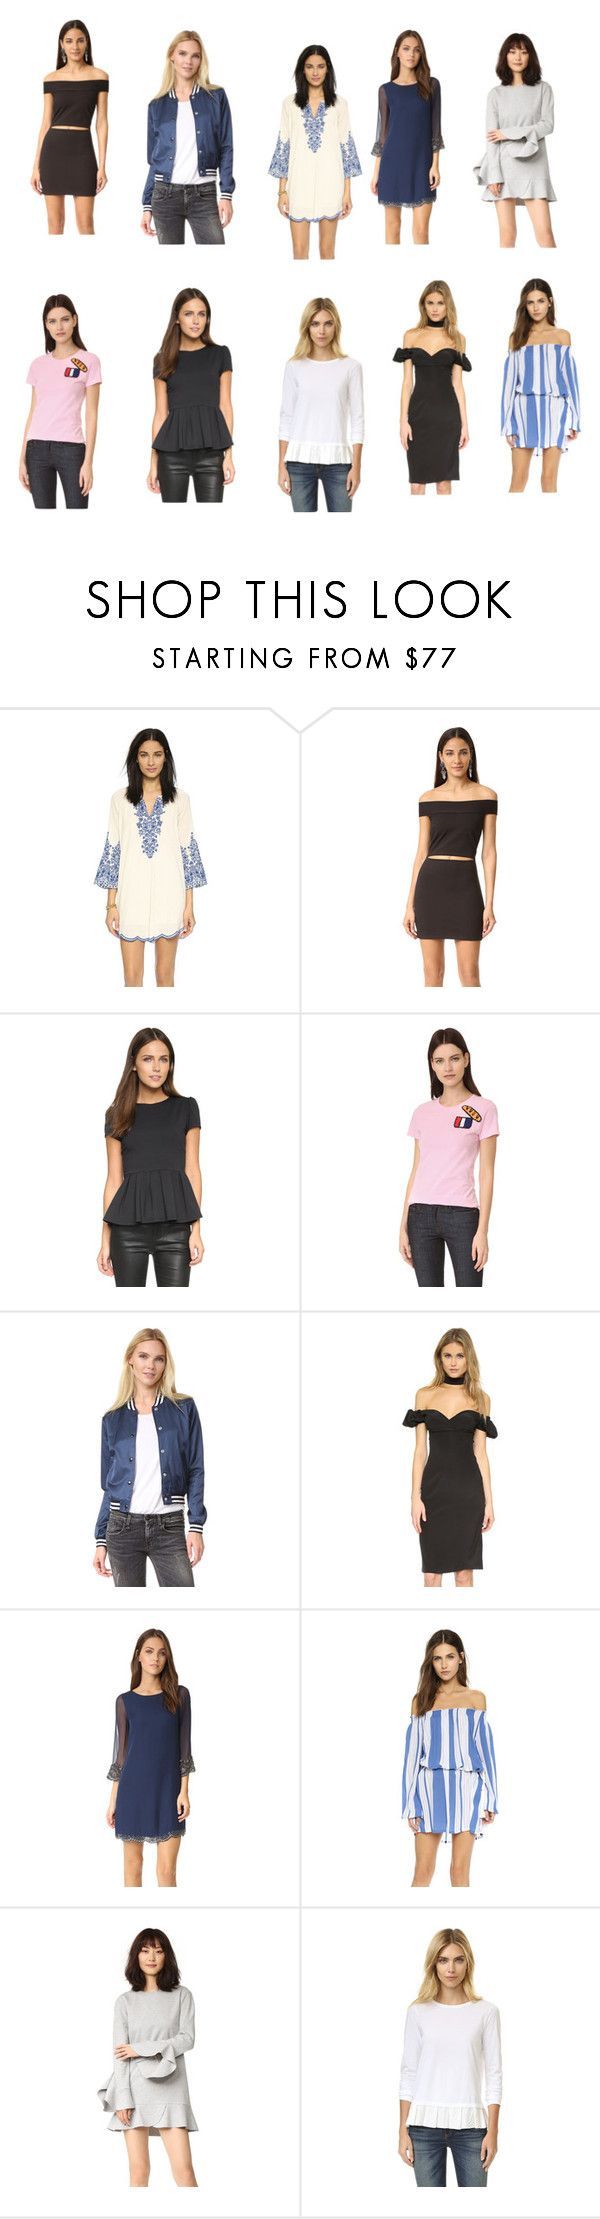 """""""tops casual wear collection sale"""" by monica022 ❤ liked on Polyvore featuring Love Sam, Susana Monaco, Michaela Buerger, R13, Alexis, Alice + Olivia, Faithfull, Goen.J, Clu and vintage"""